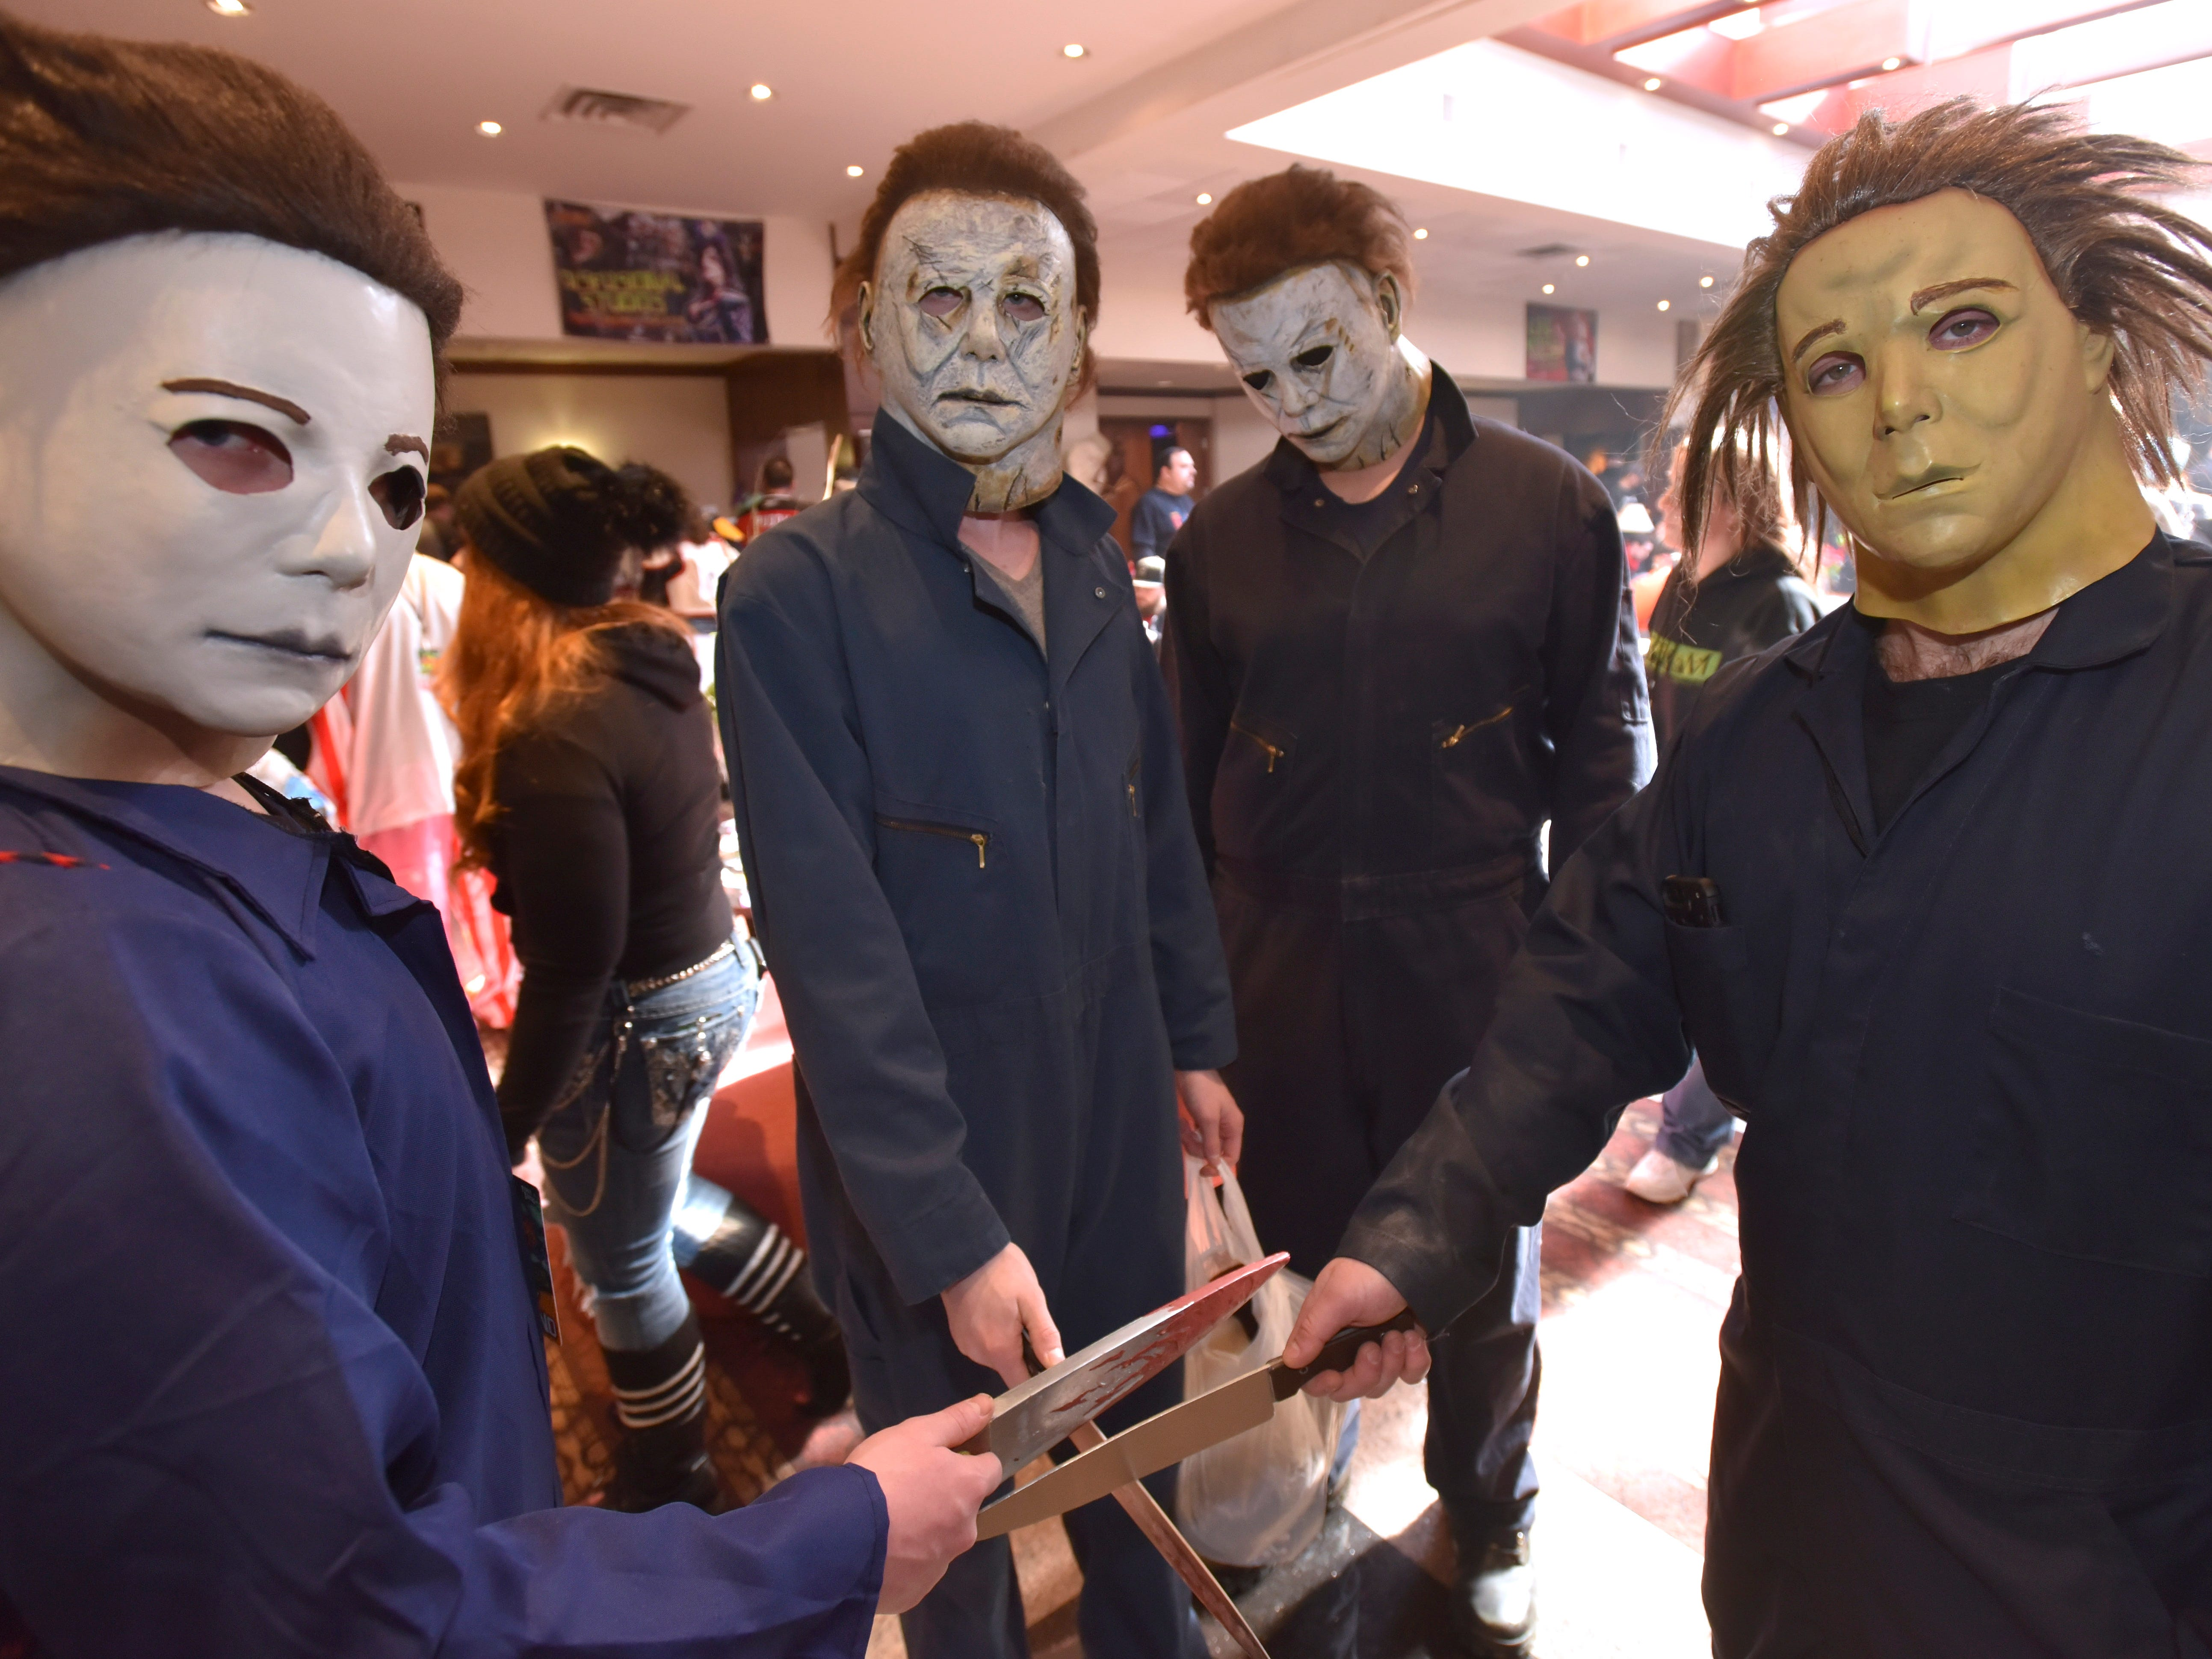 Four Michael Myers, the main character from the Halloween series of slasher films, are portrayed by, left to right, Dominic Wilks, 16, of Fraser, Seth Soetebeer, 17, of Rochester Hills, Jacob Cherry, 16, Auburn Hills, and Jason Shanker, 32, of Southfield, pose at the event.